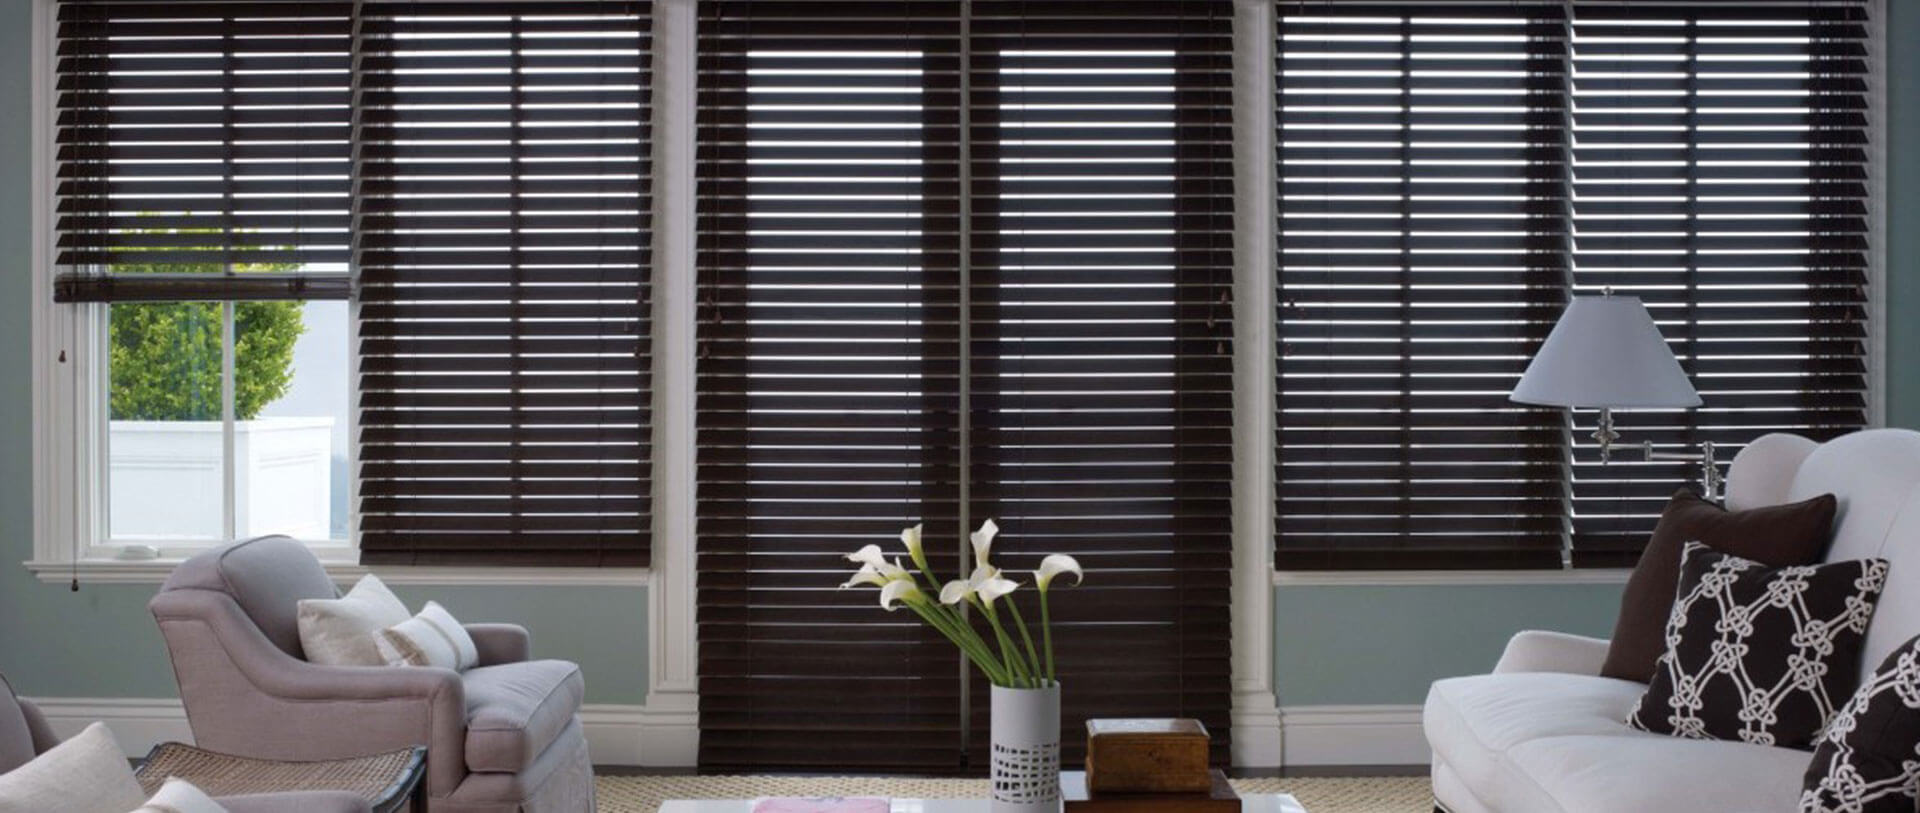 window blinds near me Pleasant Grove Blinds | Blinds in Utah County | Rally's Blinds window blinds near me